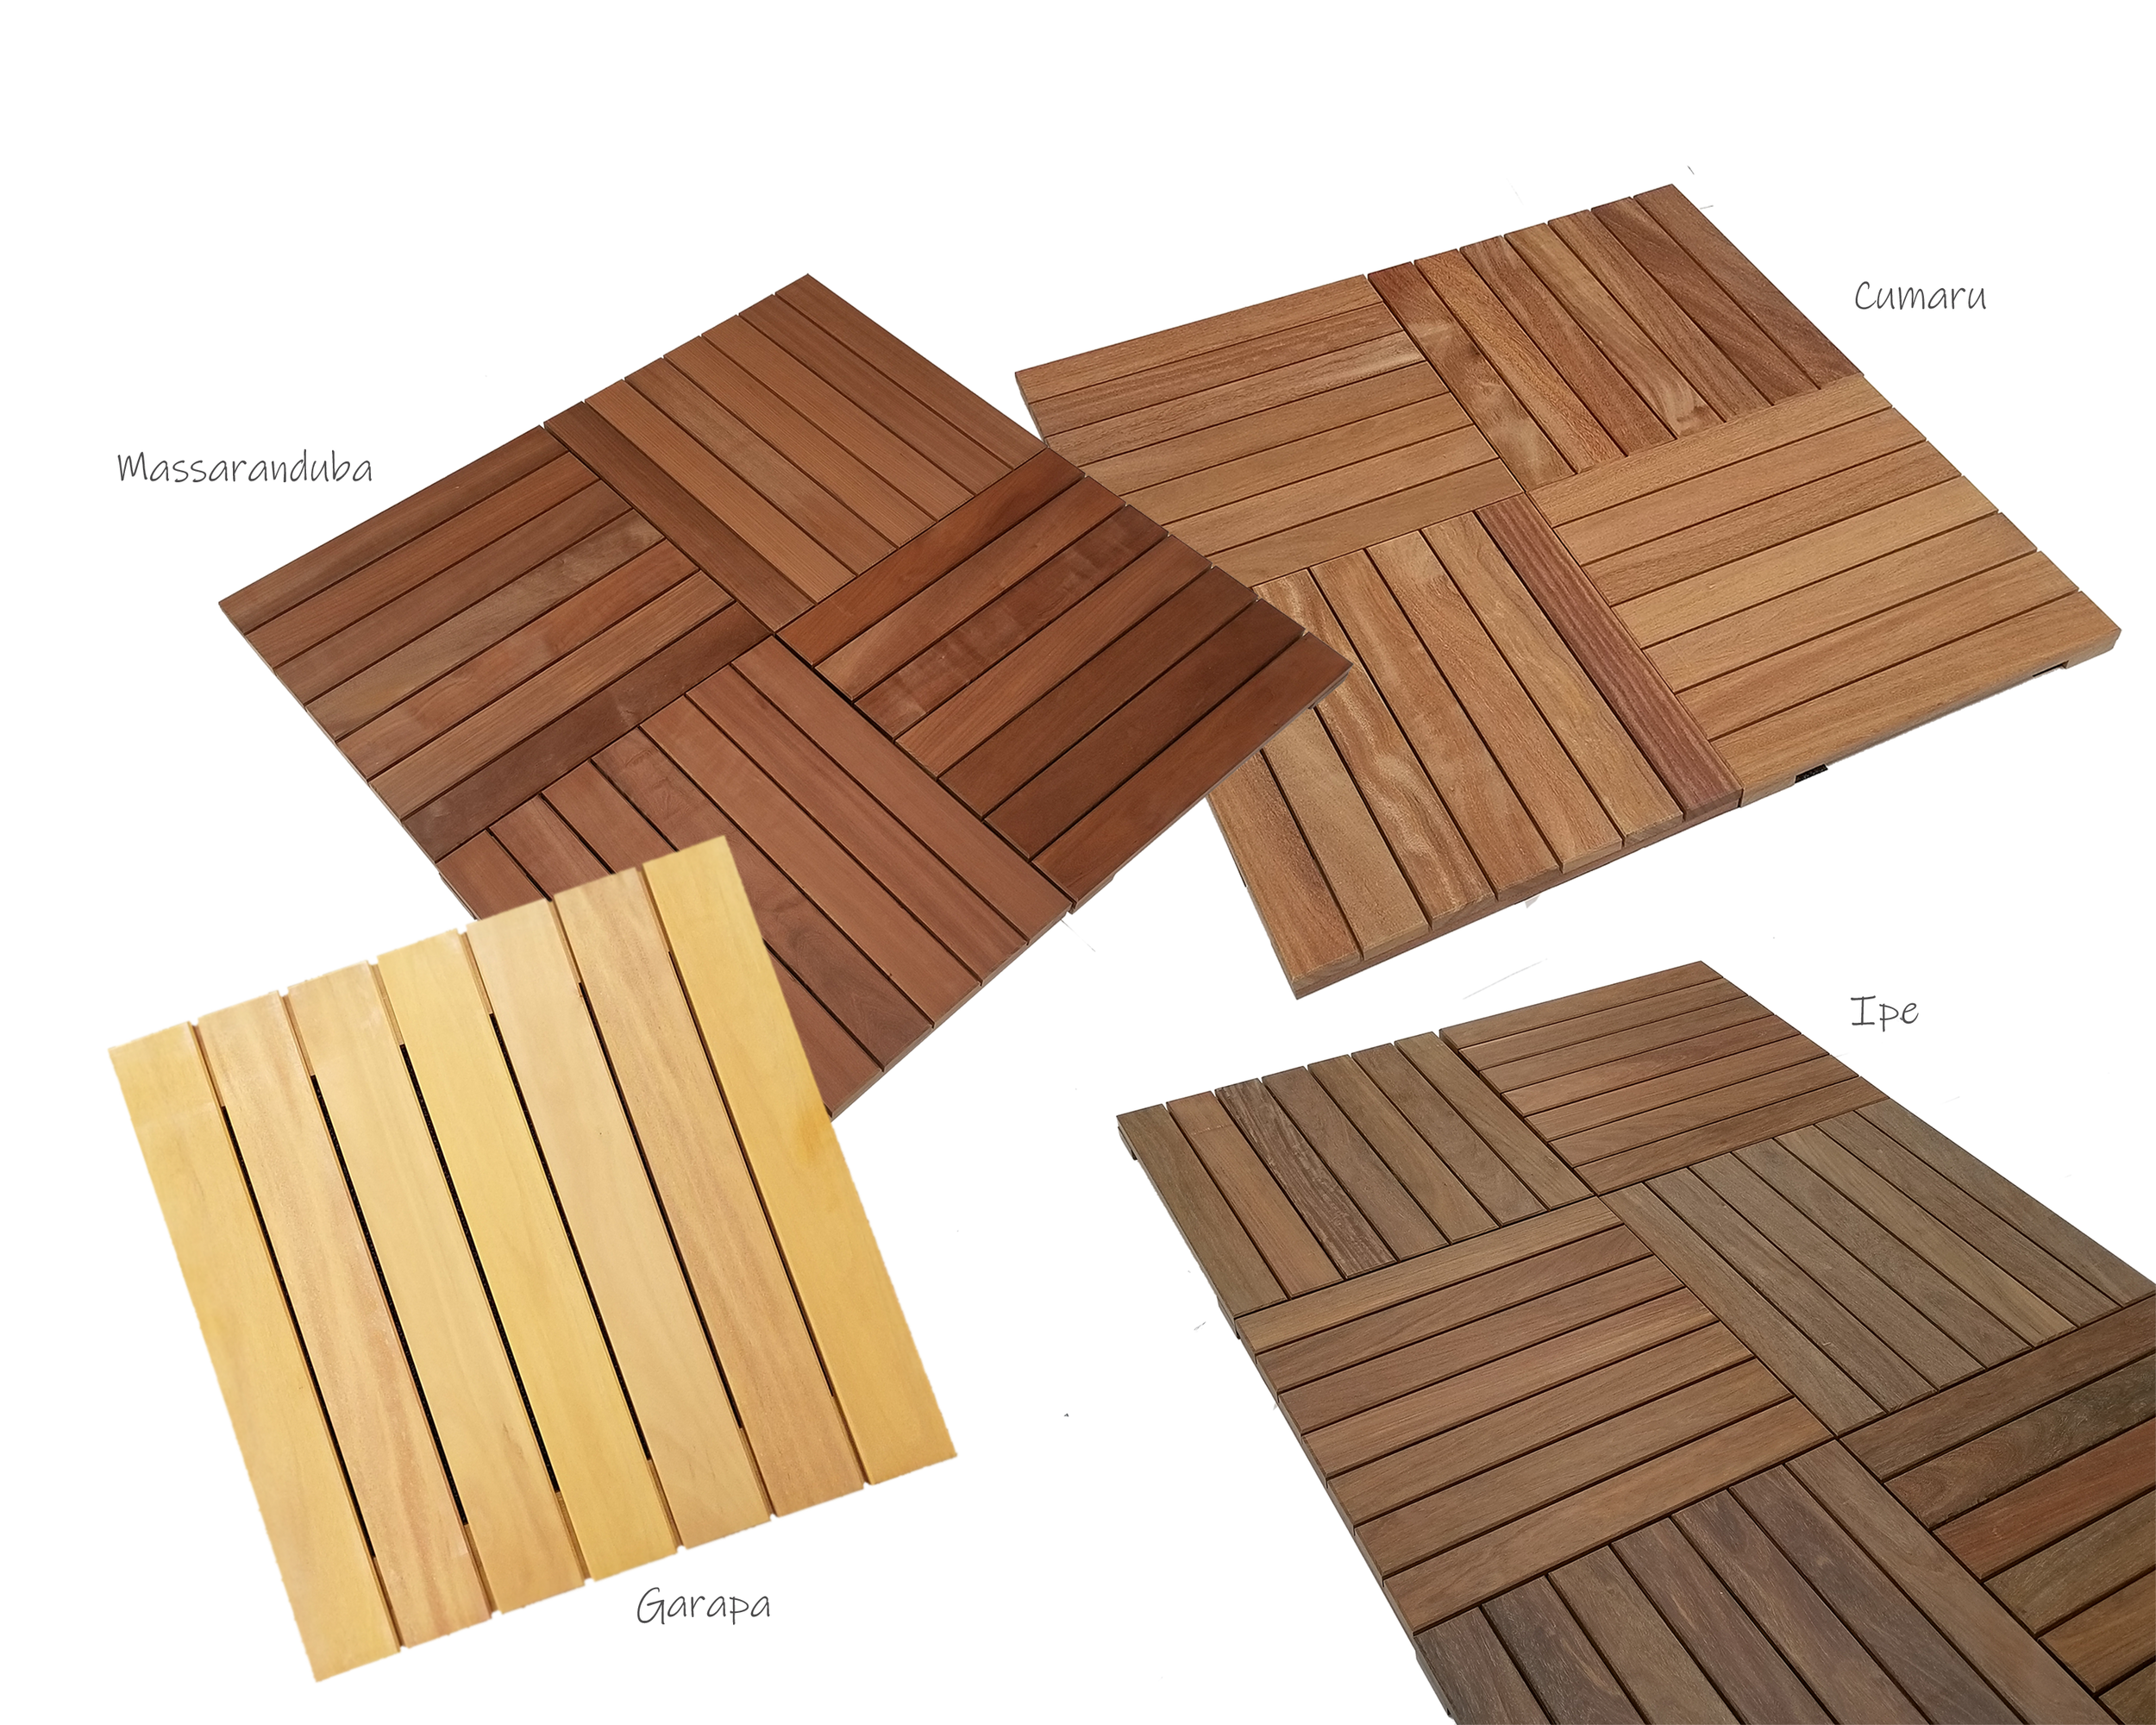 "Solid Hardwood Deck Tiles - With our 100% solid hardwood deck tiles, there's no need for costly renovations. Save money on installation and repairs by building a deck that lasts 50+ years in all climates including hot, dry, wet, and cold weather. Our 24"" x 24"" tiles are chemical-free and made from commercial-grade exotic woods that are naturally resistant to mold, insects, and decay. All of our wood is responsibly harvested and FSC certified."